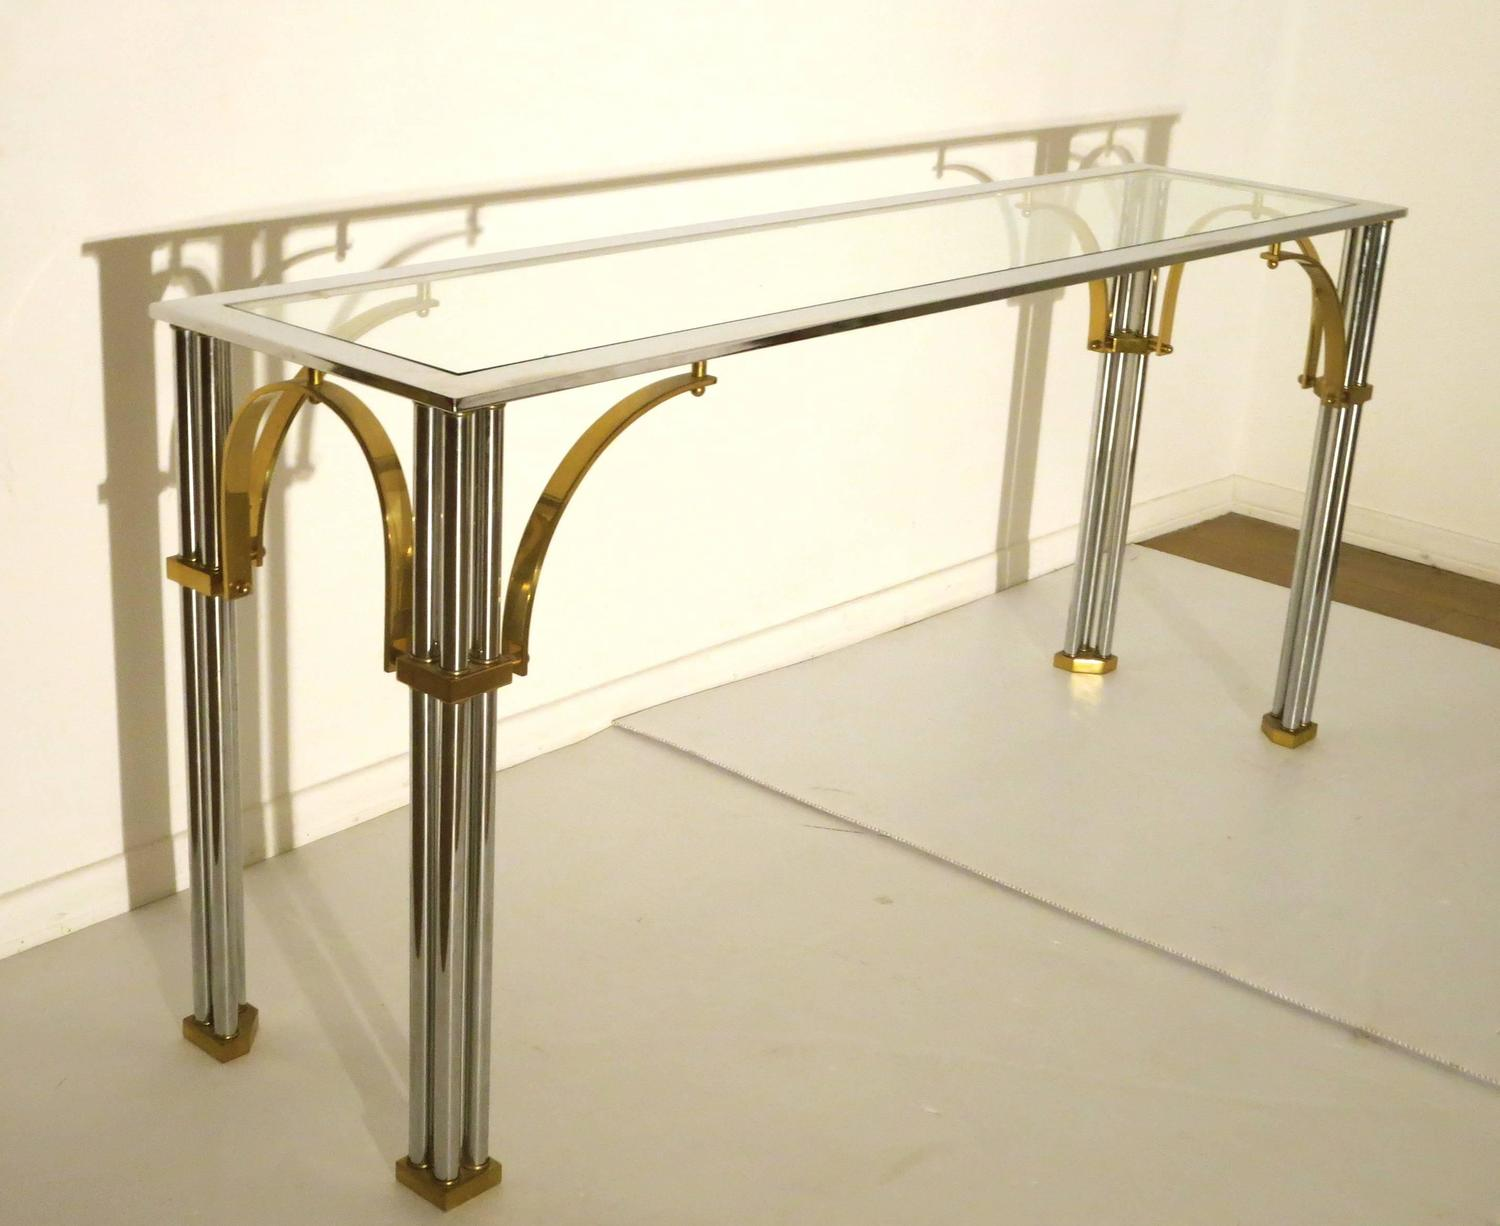 vogue chrome sofa table milan 4 seater set striking and brass with glass top console or